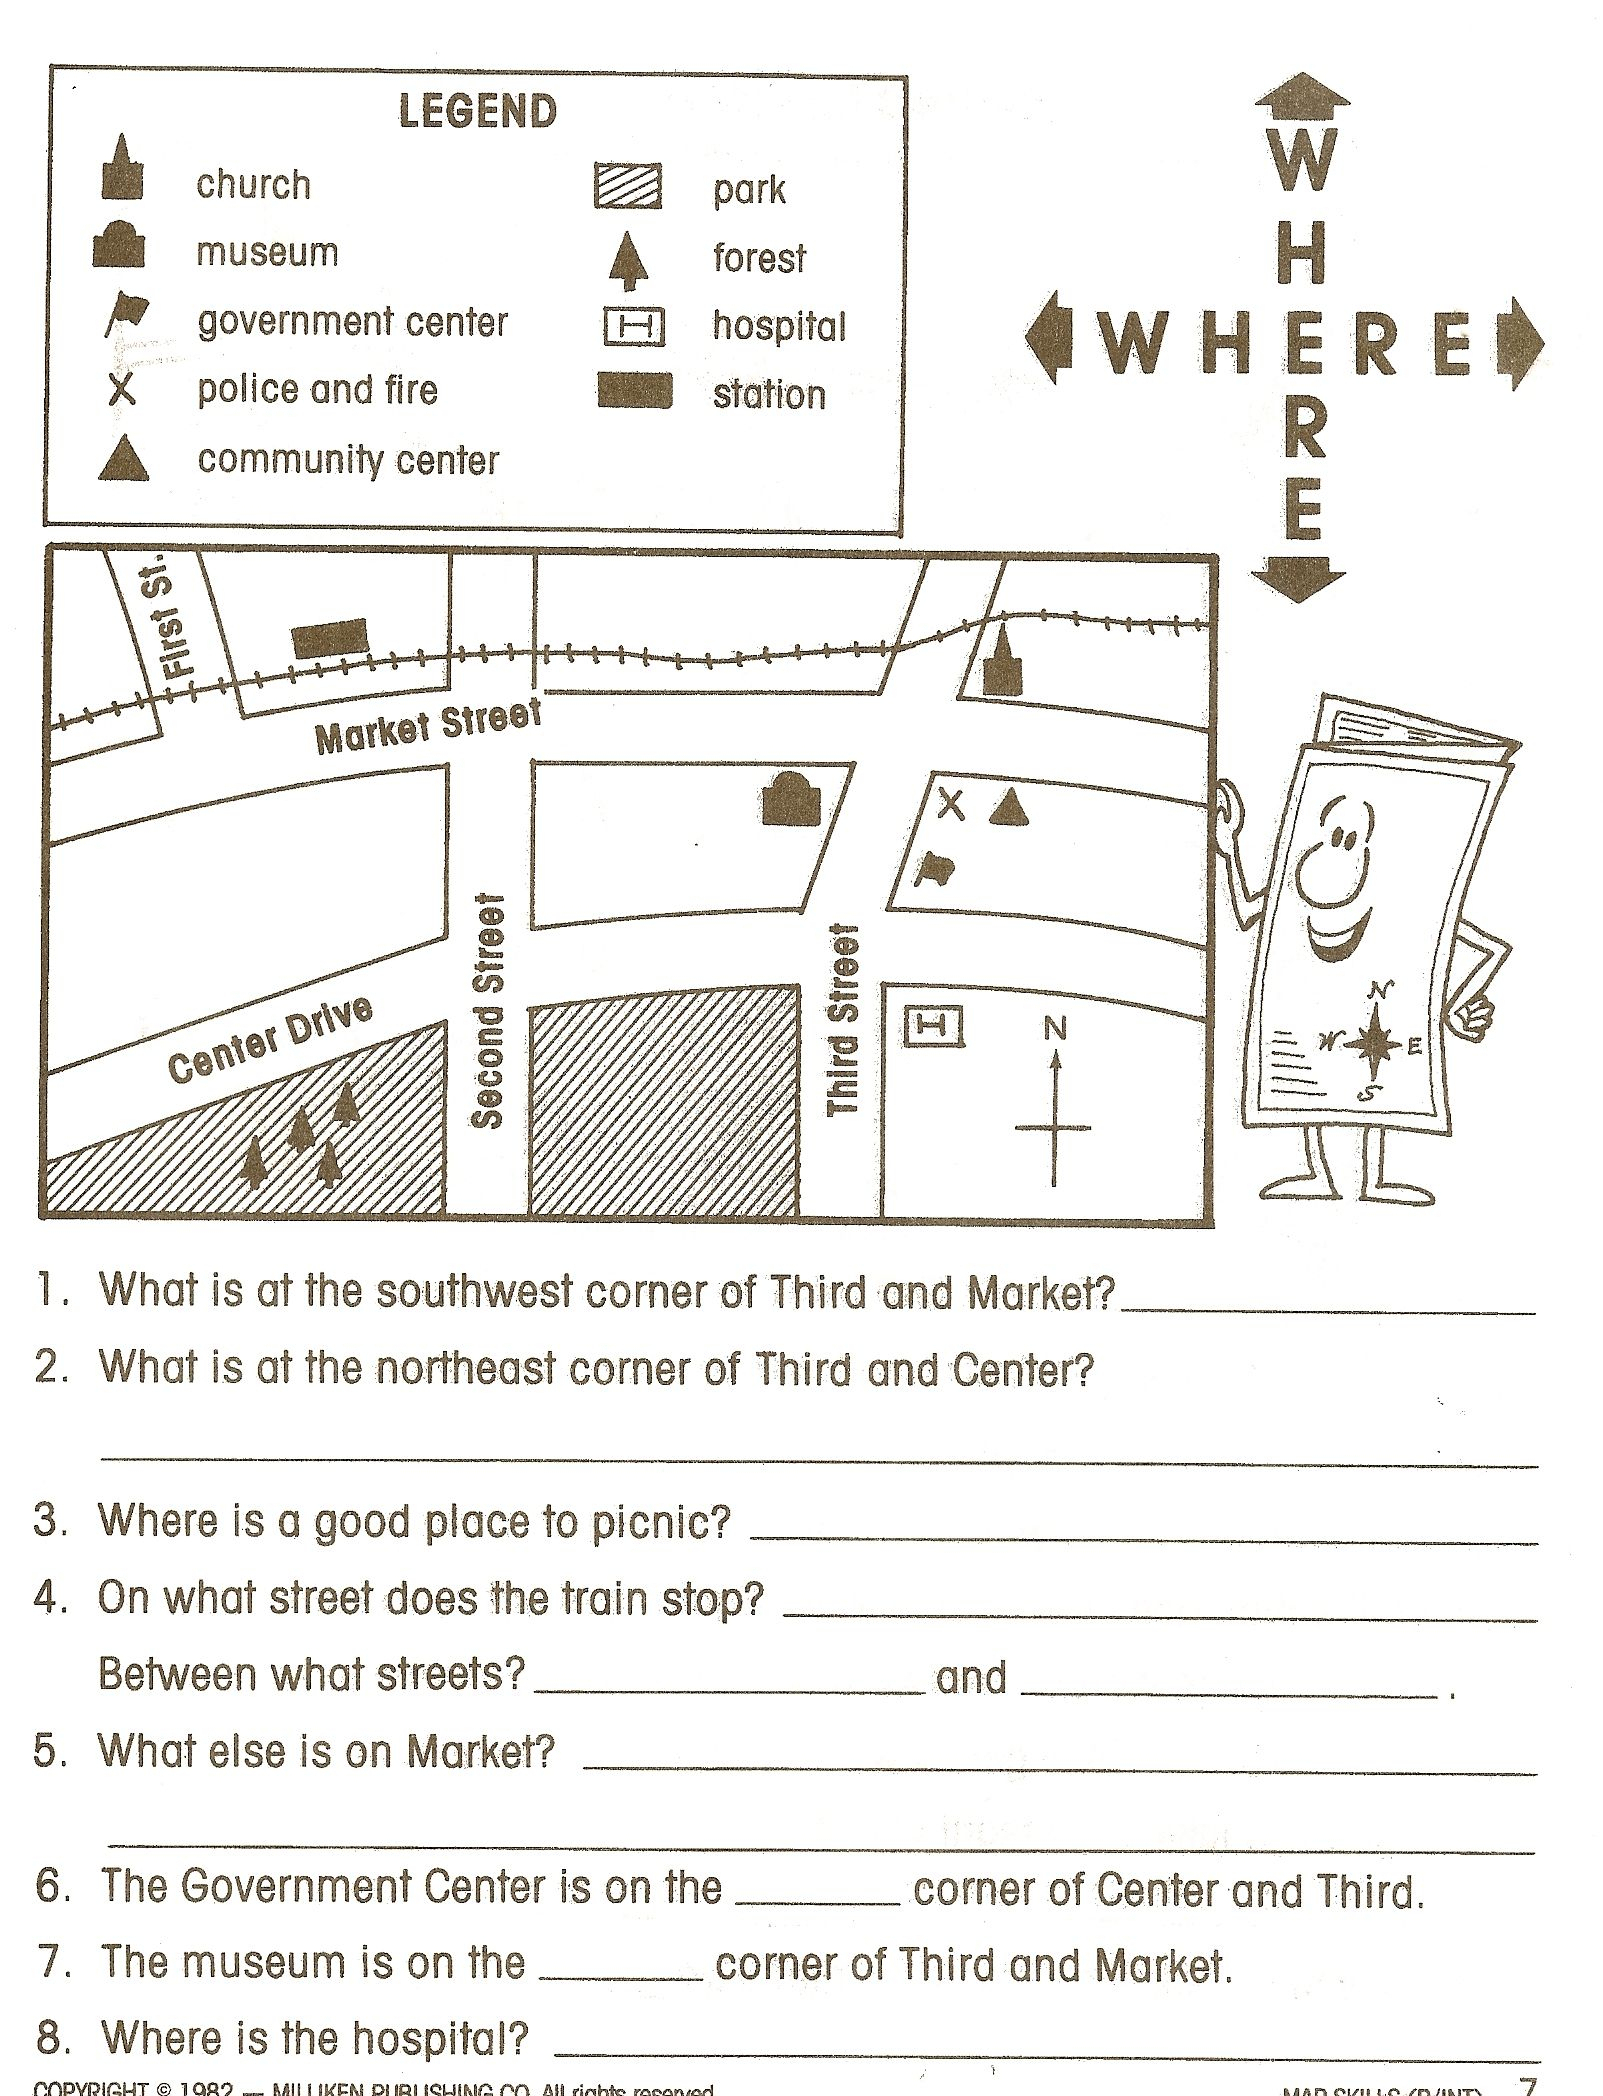 First Grade Social Studies Worksheets For Free Download   Worksheet News - Social Studies Worksheets First Grade Free Printable